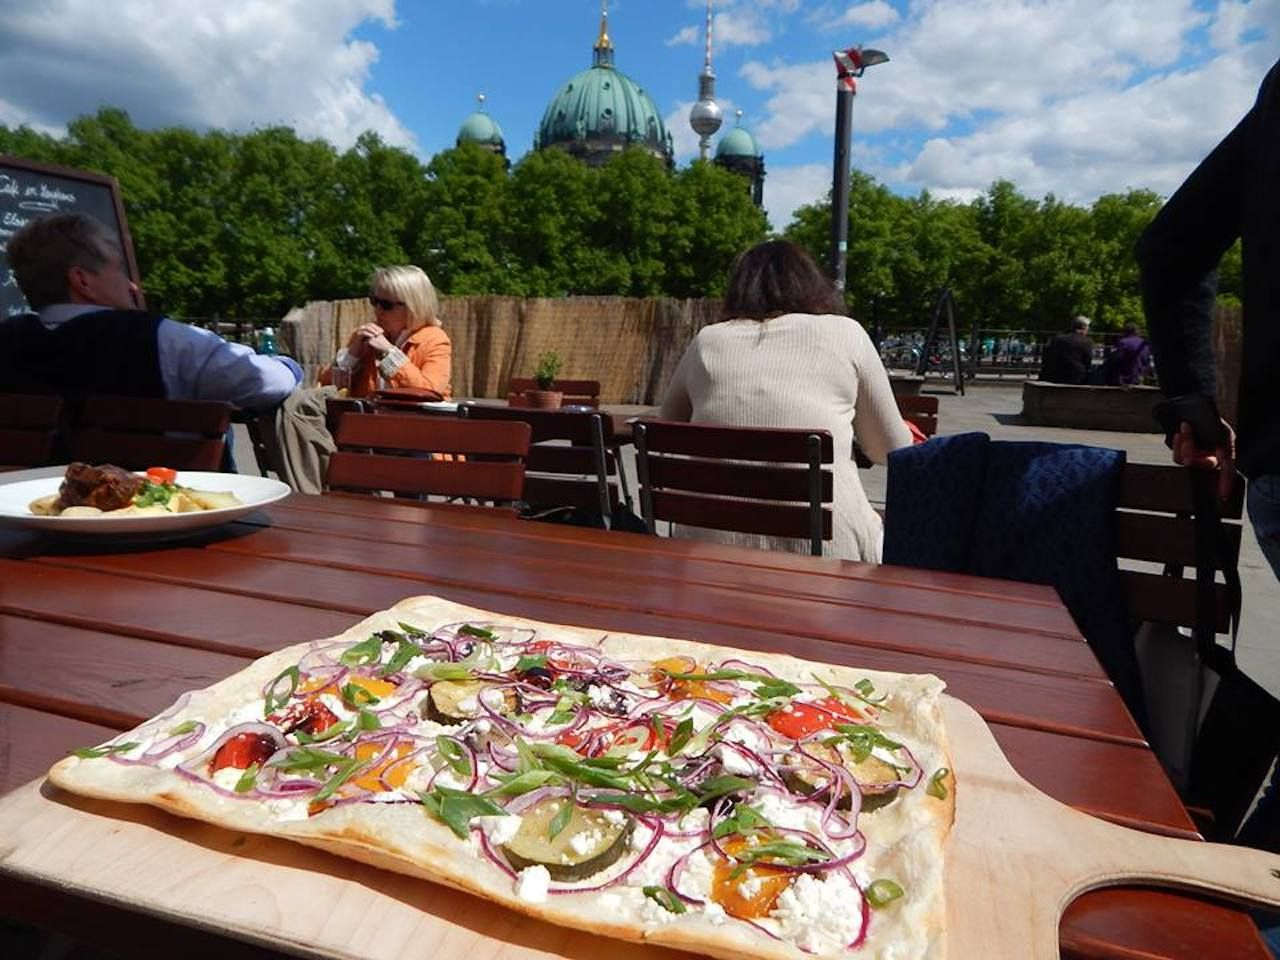 Table with flatbread pizza in front of Berlin landmark